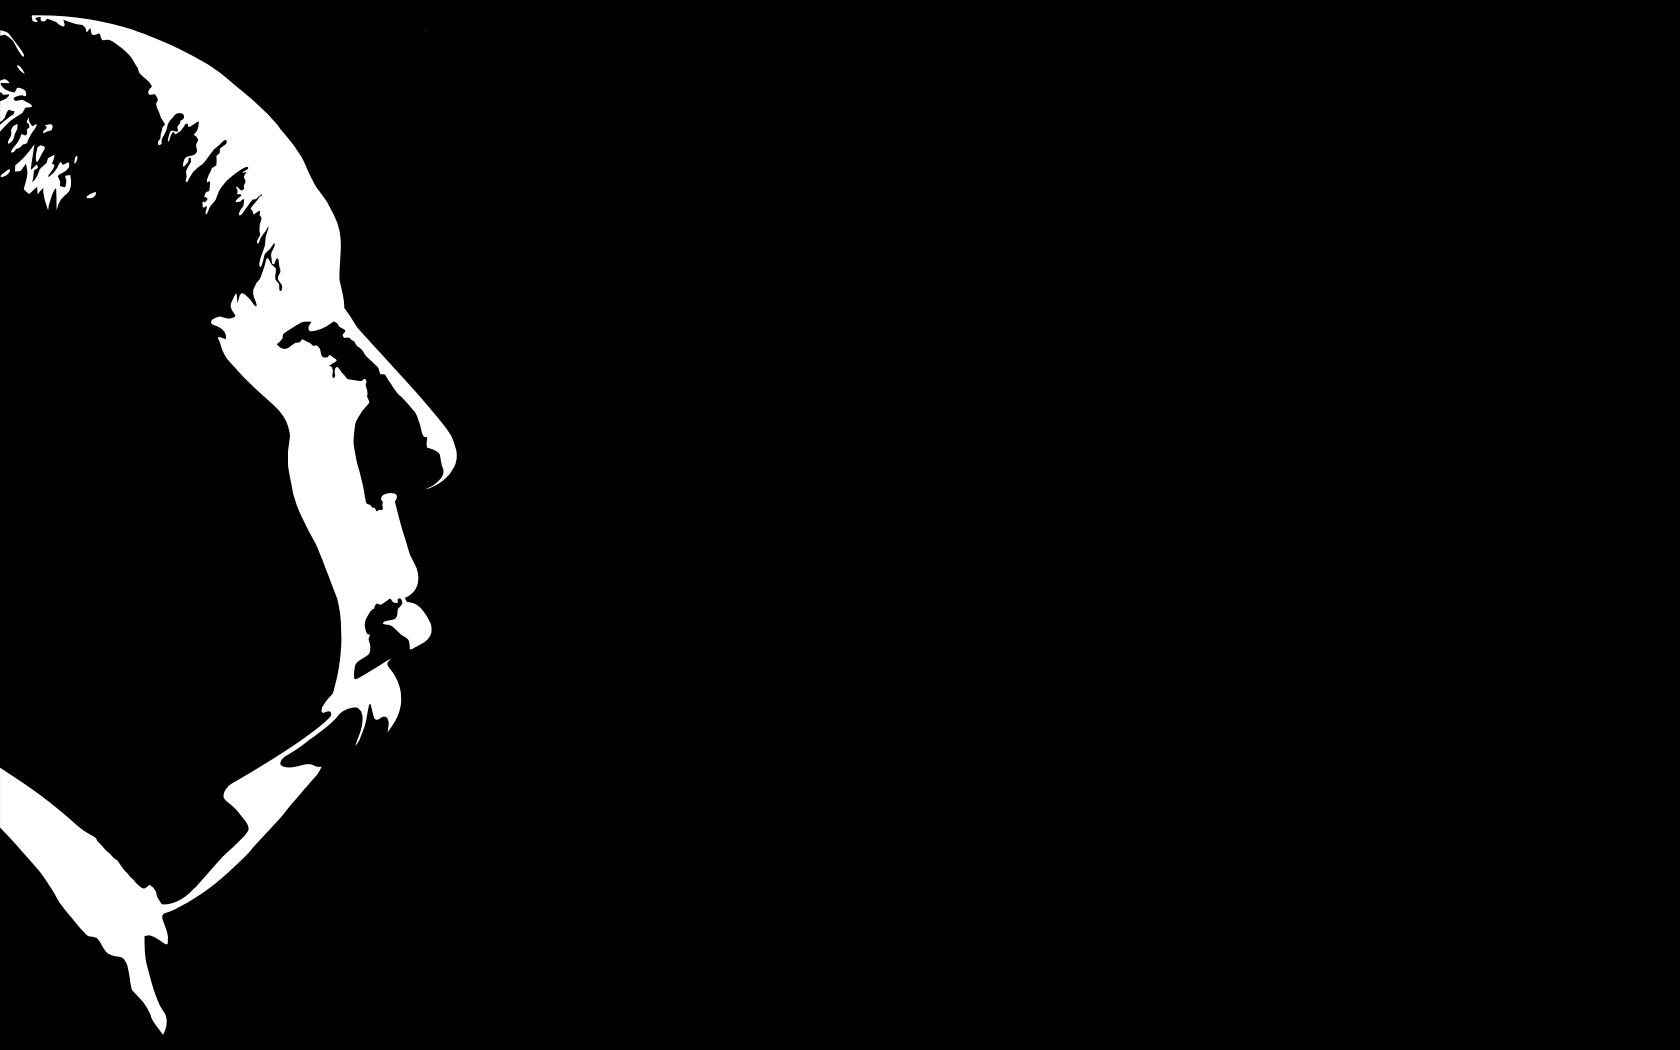 Alfred Hitchcock Wallpapers and Background Images   stmednet 1680x1050